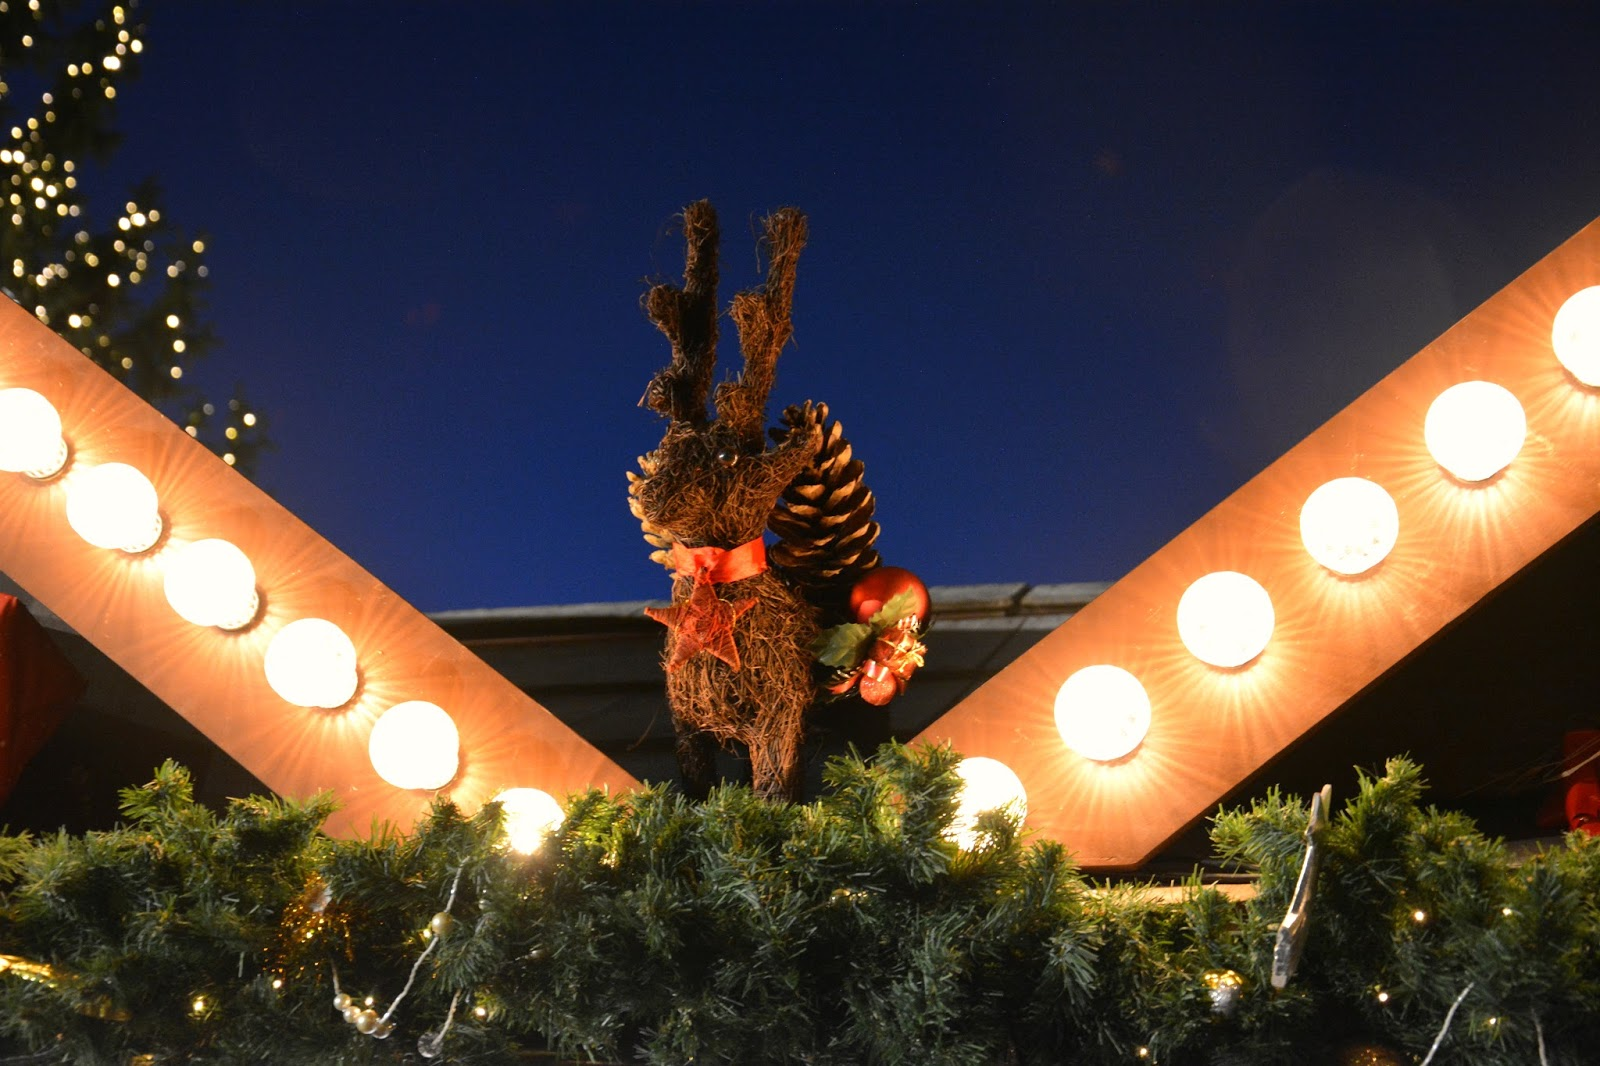 Reindeer decoration on top of huts with lights by its sides